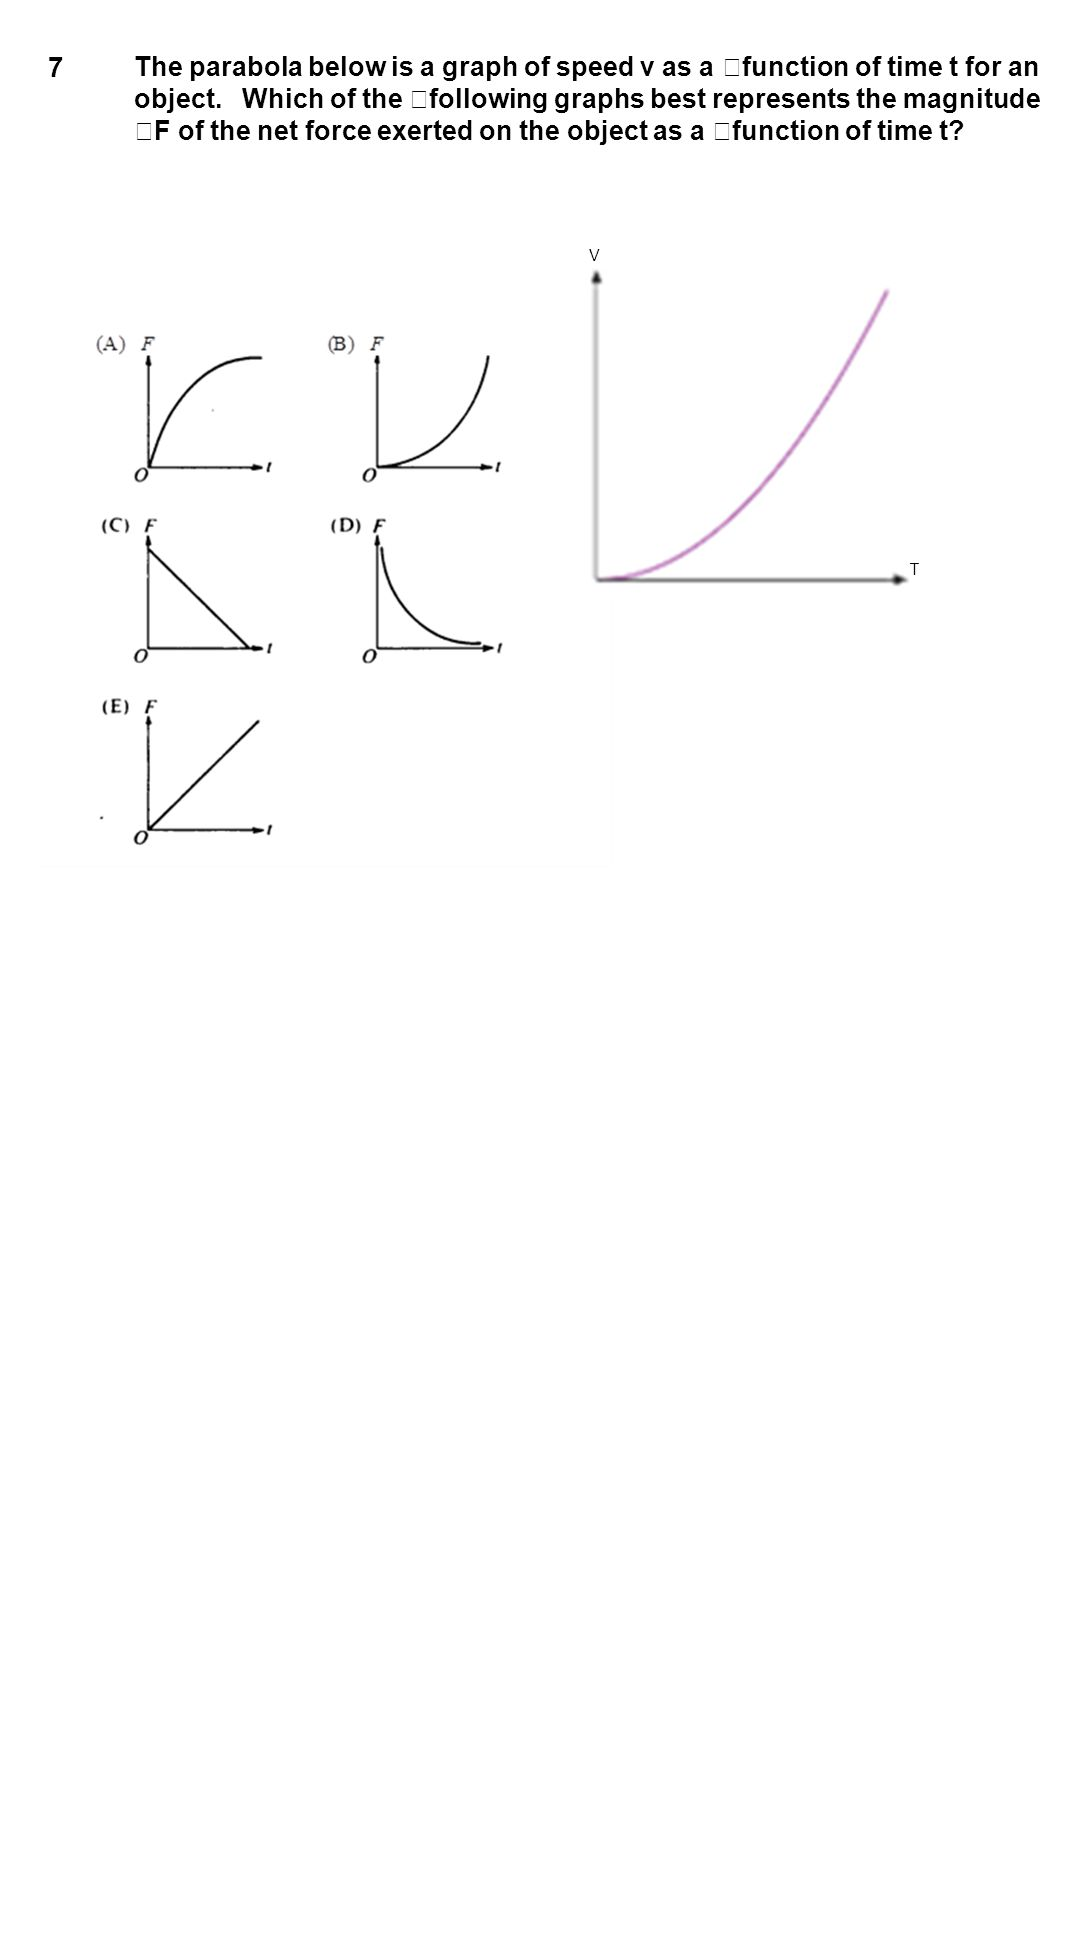 7 The parabola below is a graph of speed v as a function of time t for an object. Which of the following graphs best represents the magnitude F of the